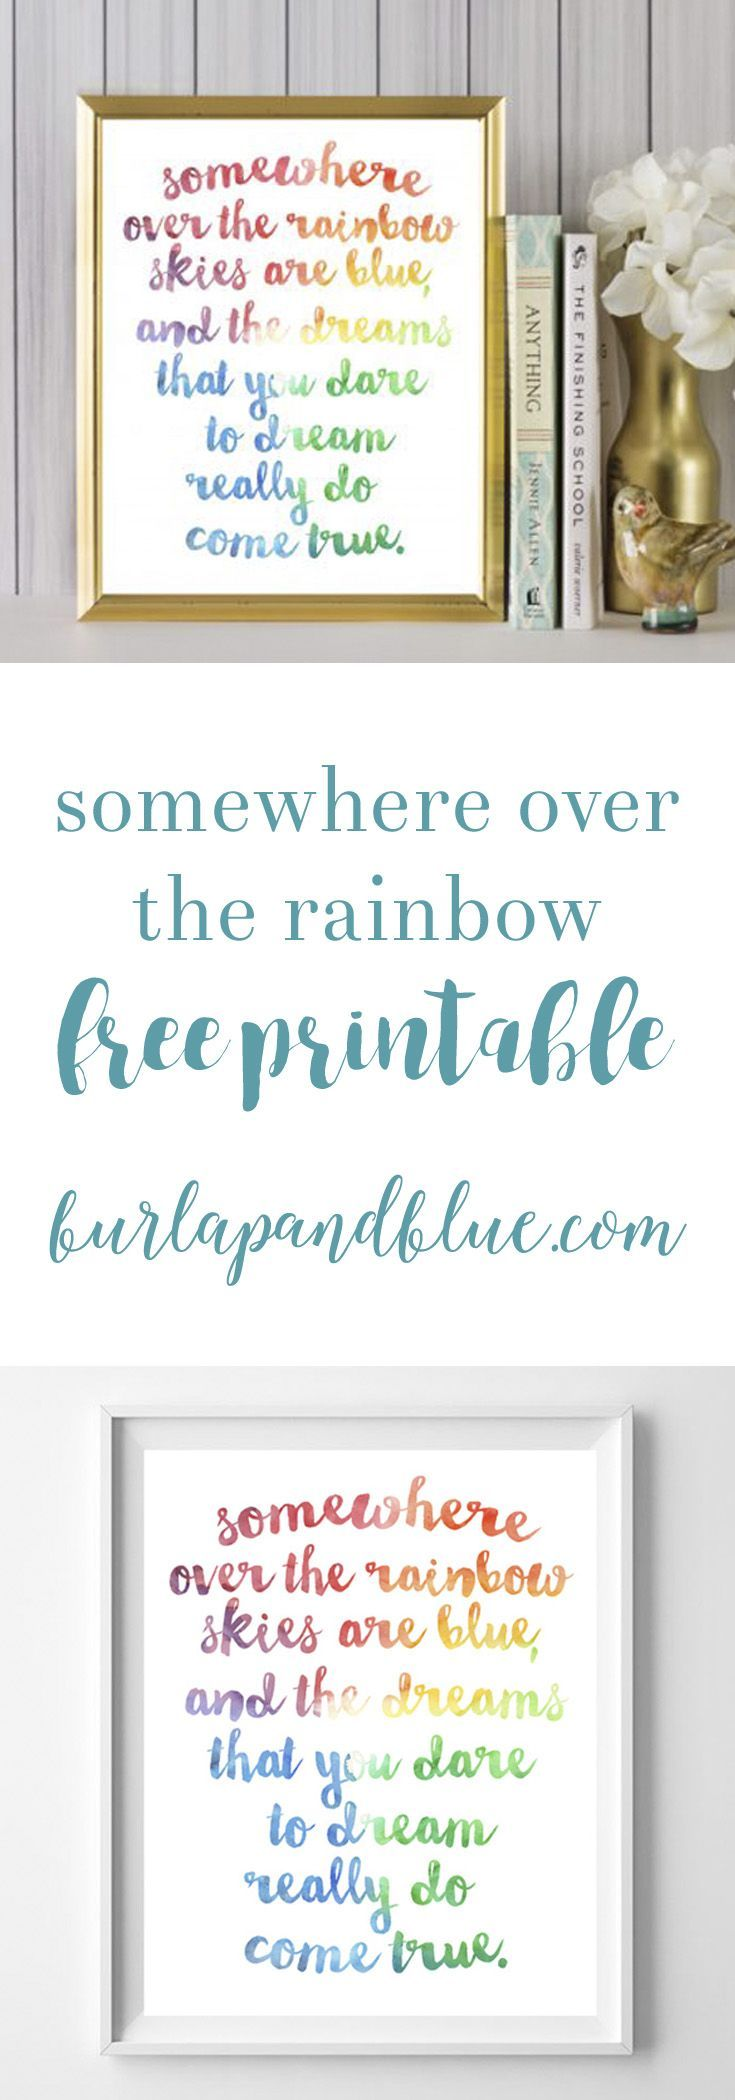 Somewhere Over the Rainbow free watercolor rainbow printable!